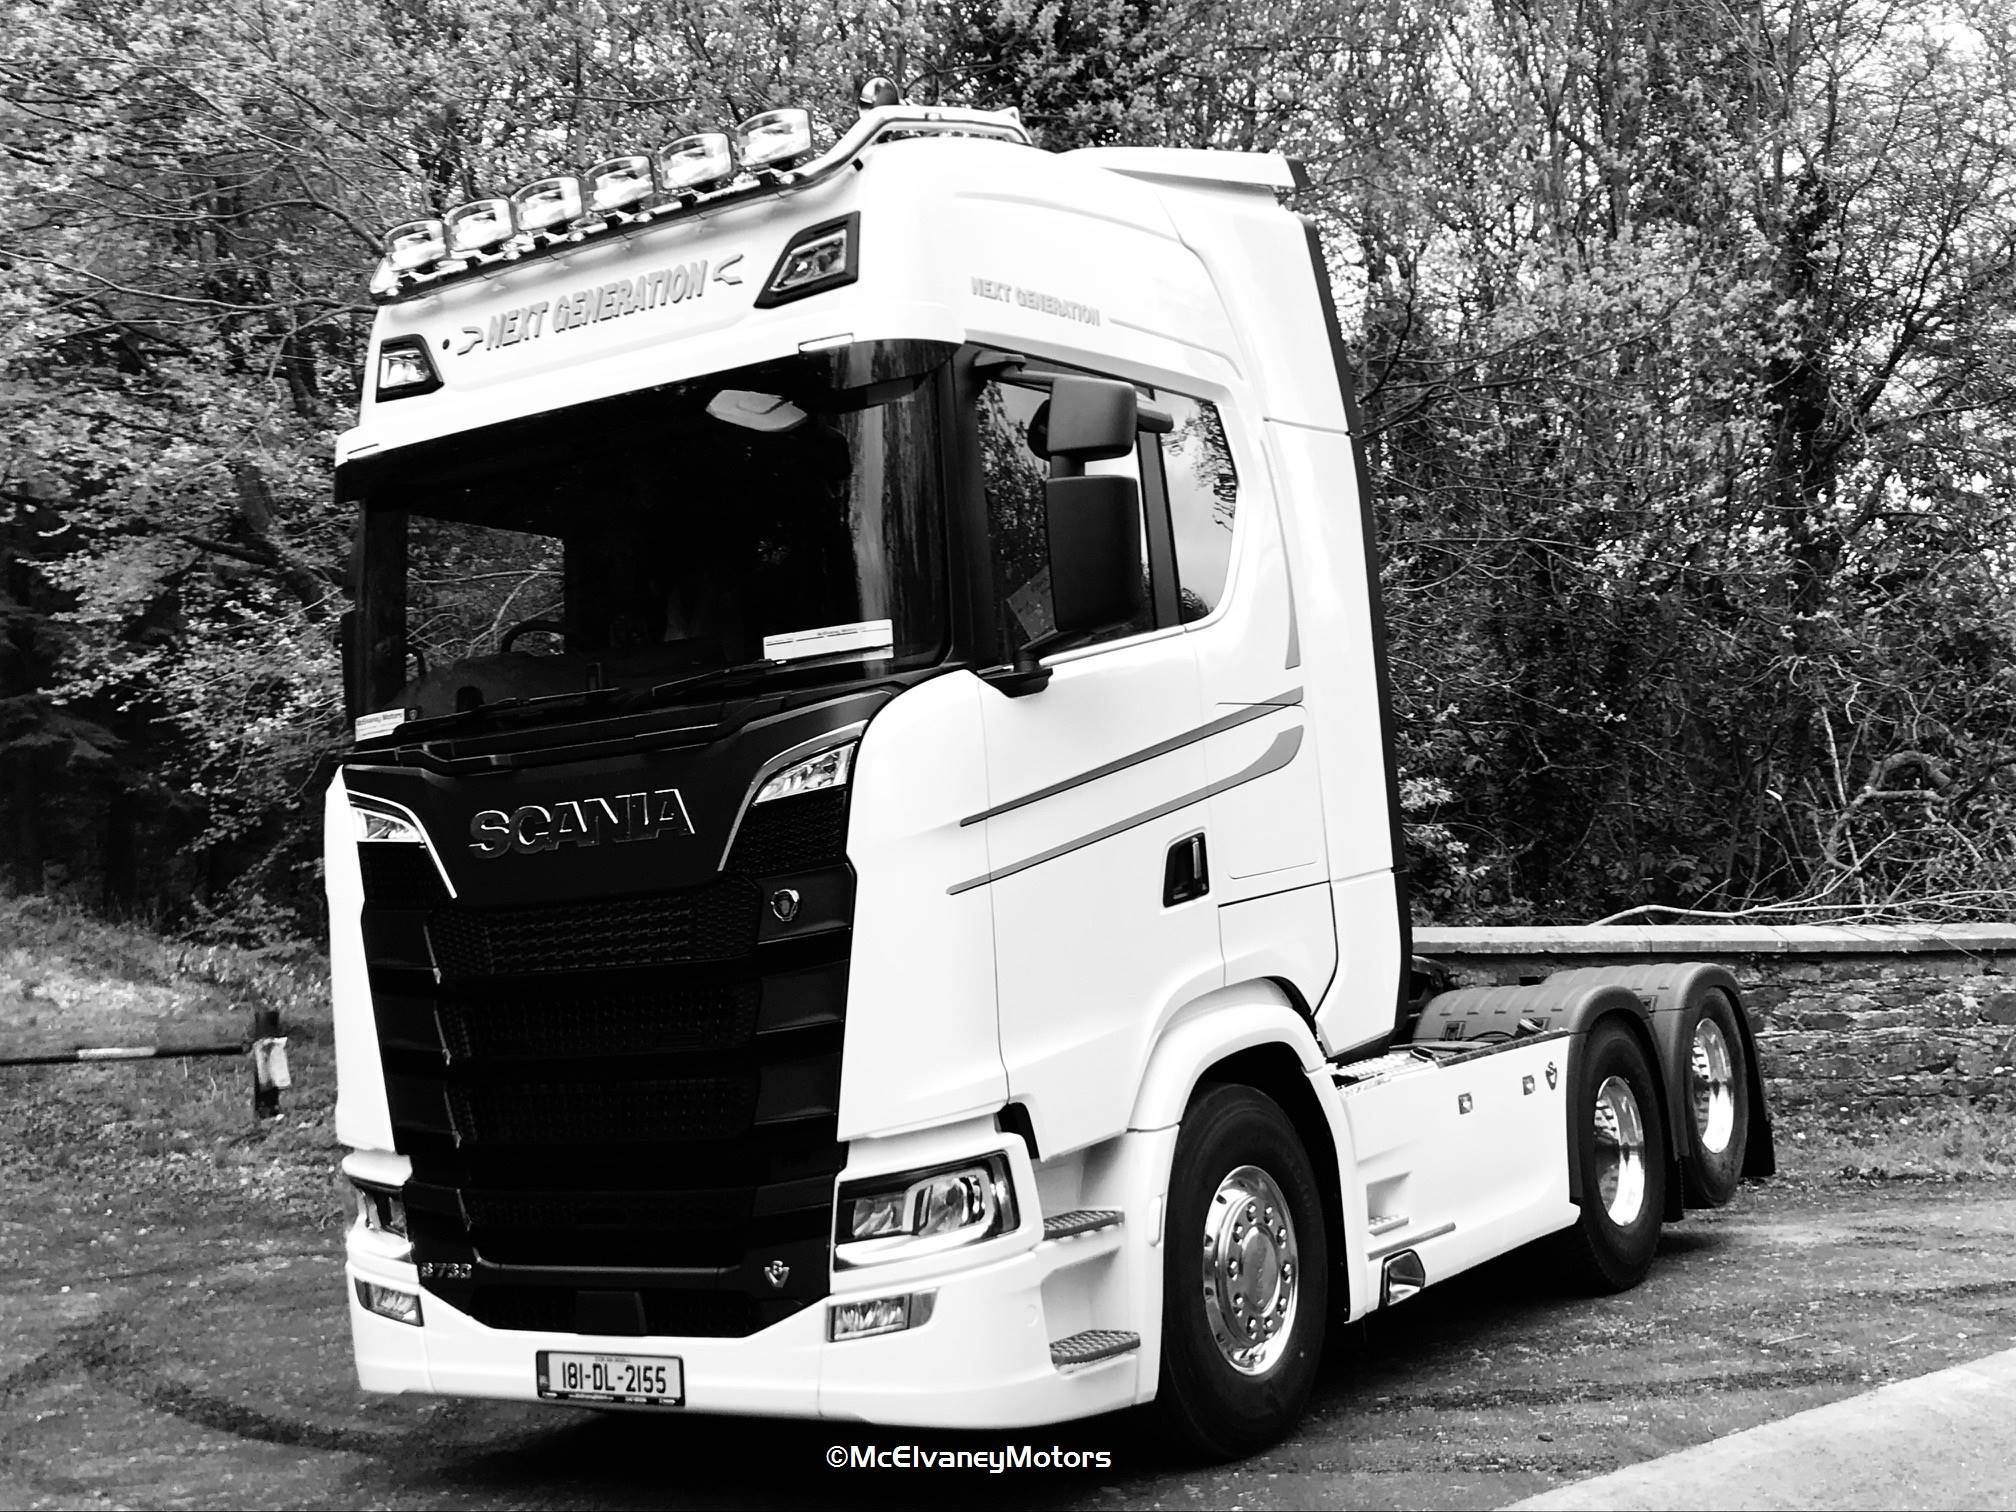 Beautiful New Gen Scania S730 for the DM Group